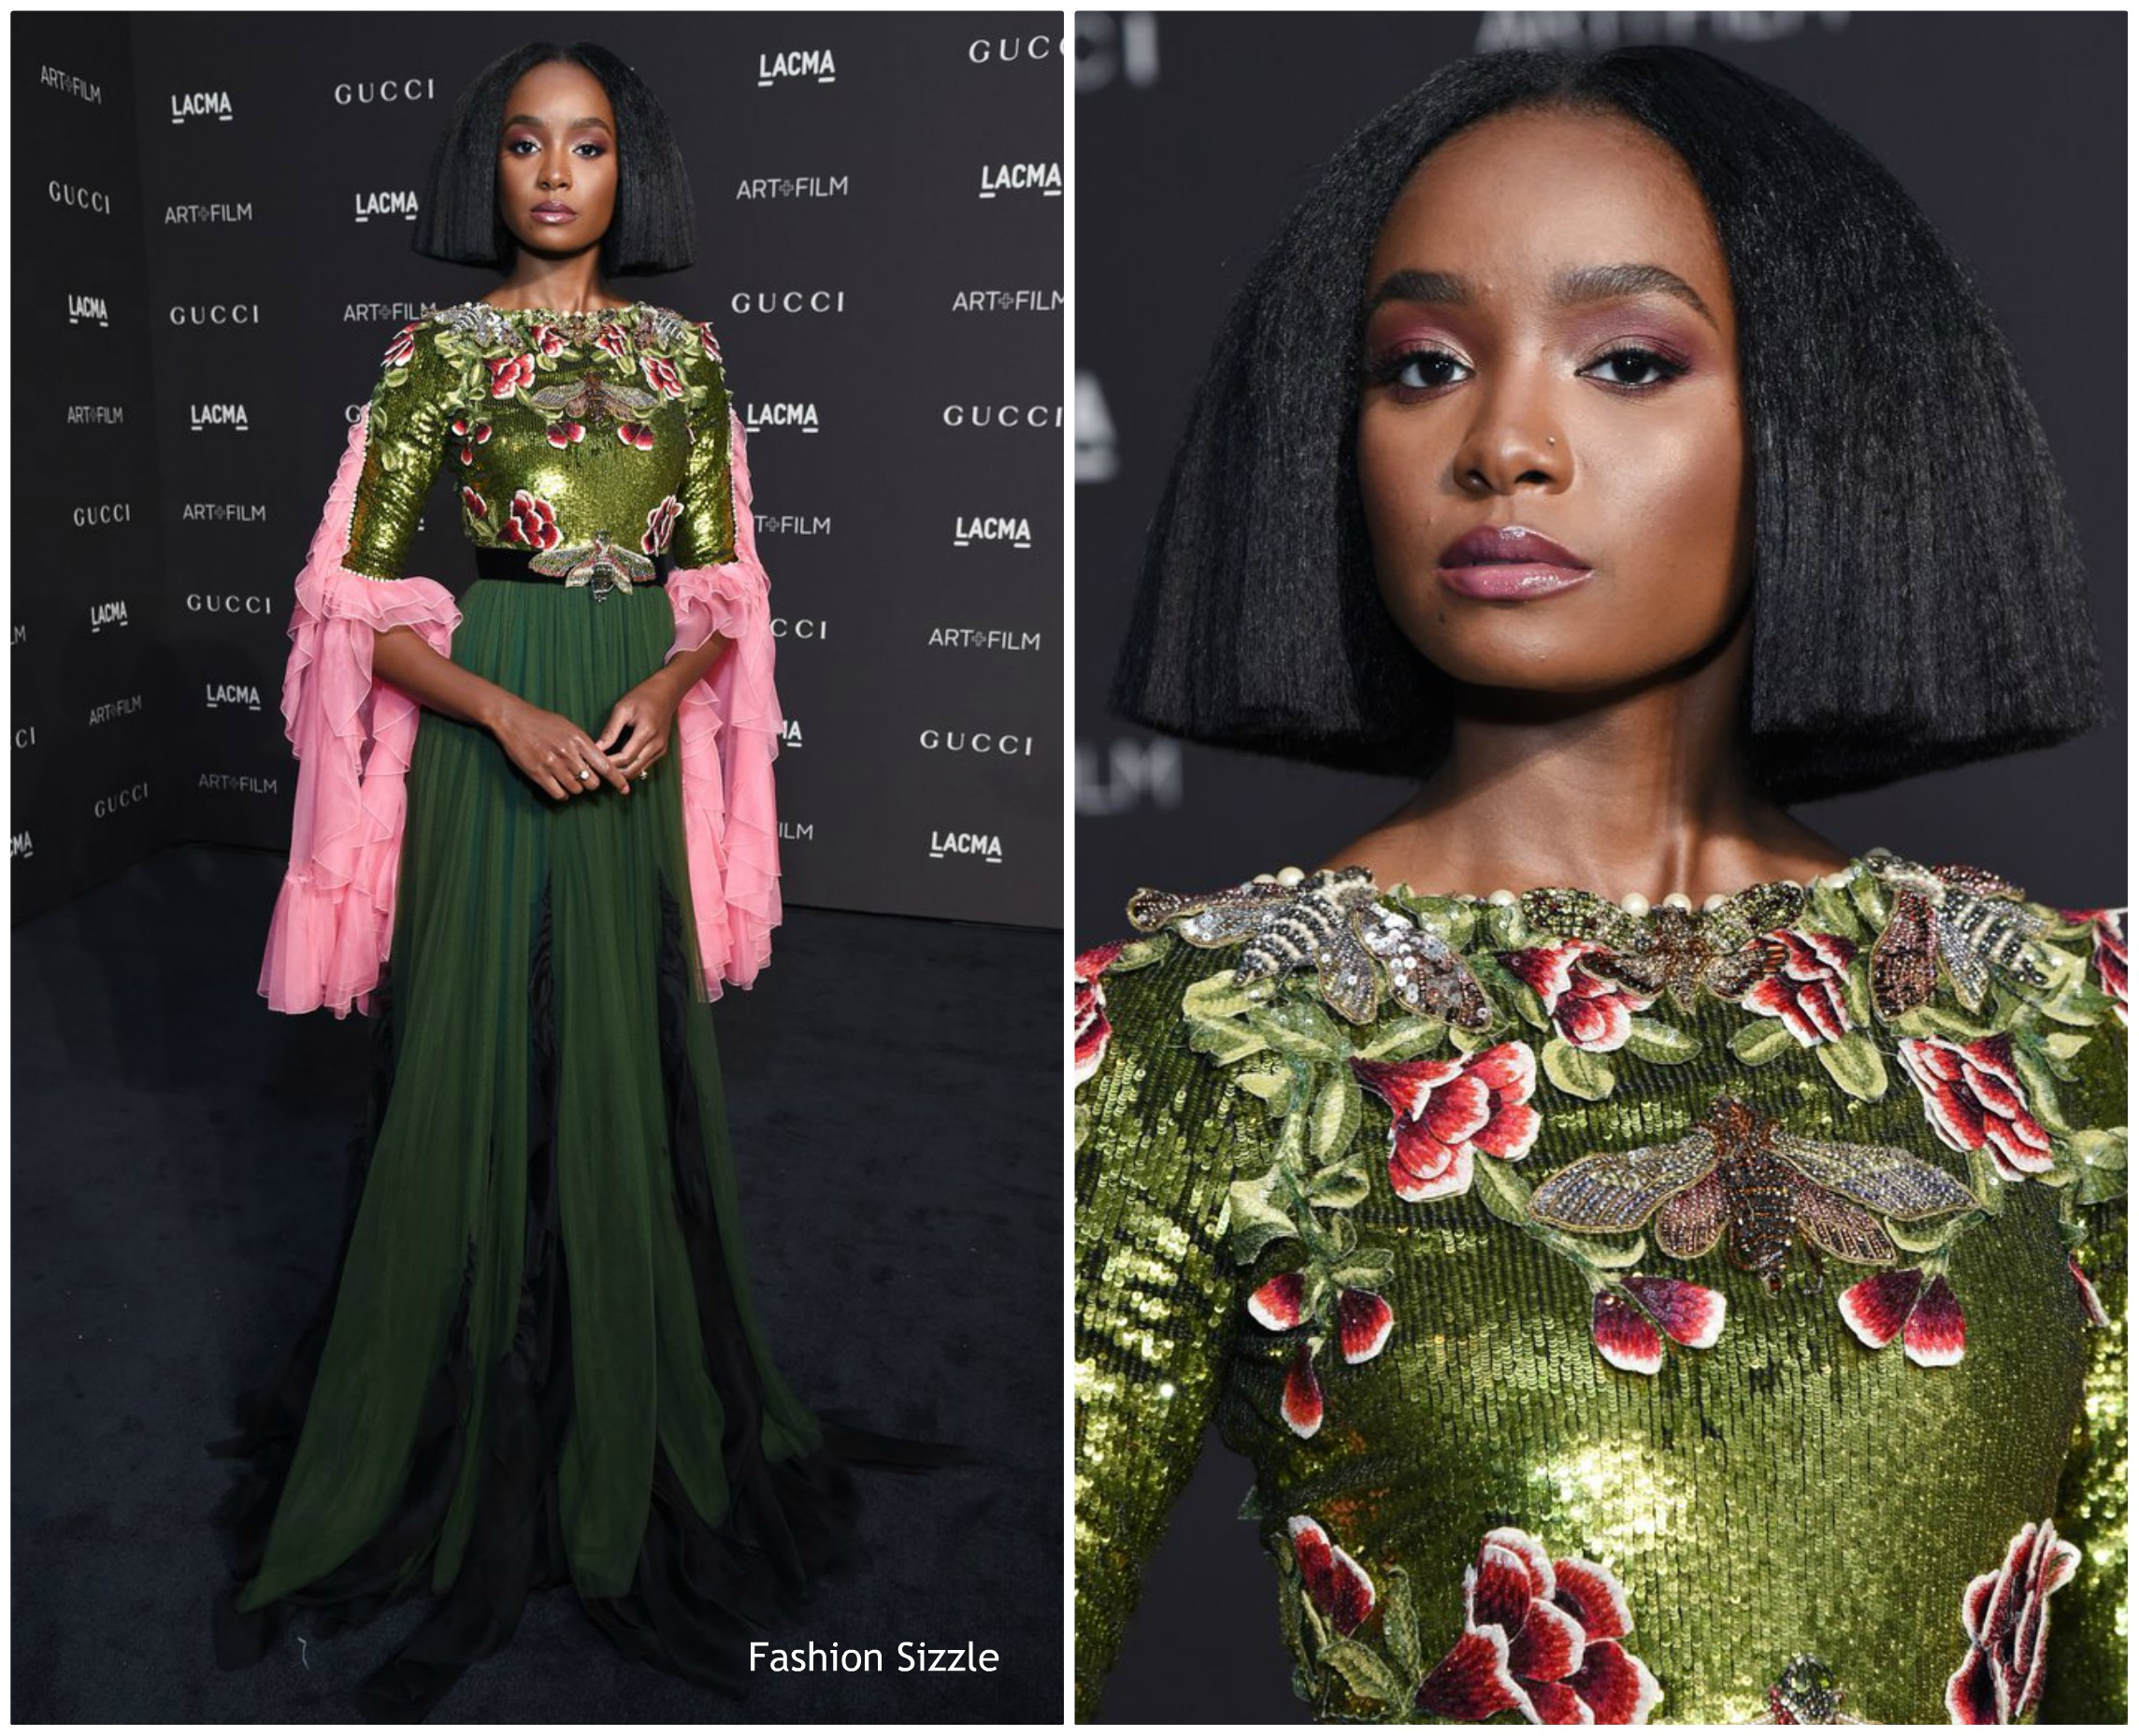 Discussion on this topic: Irene Chen, kiki-layne/